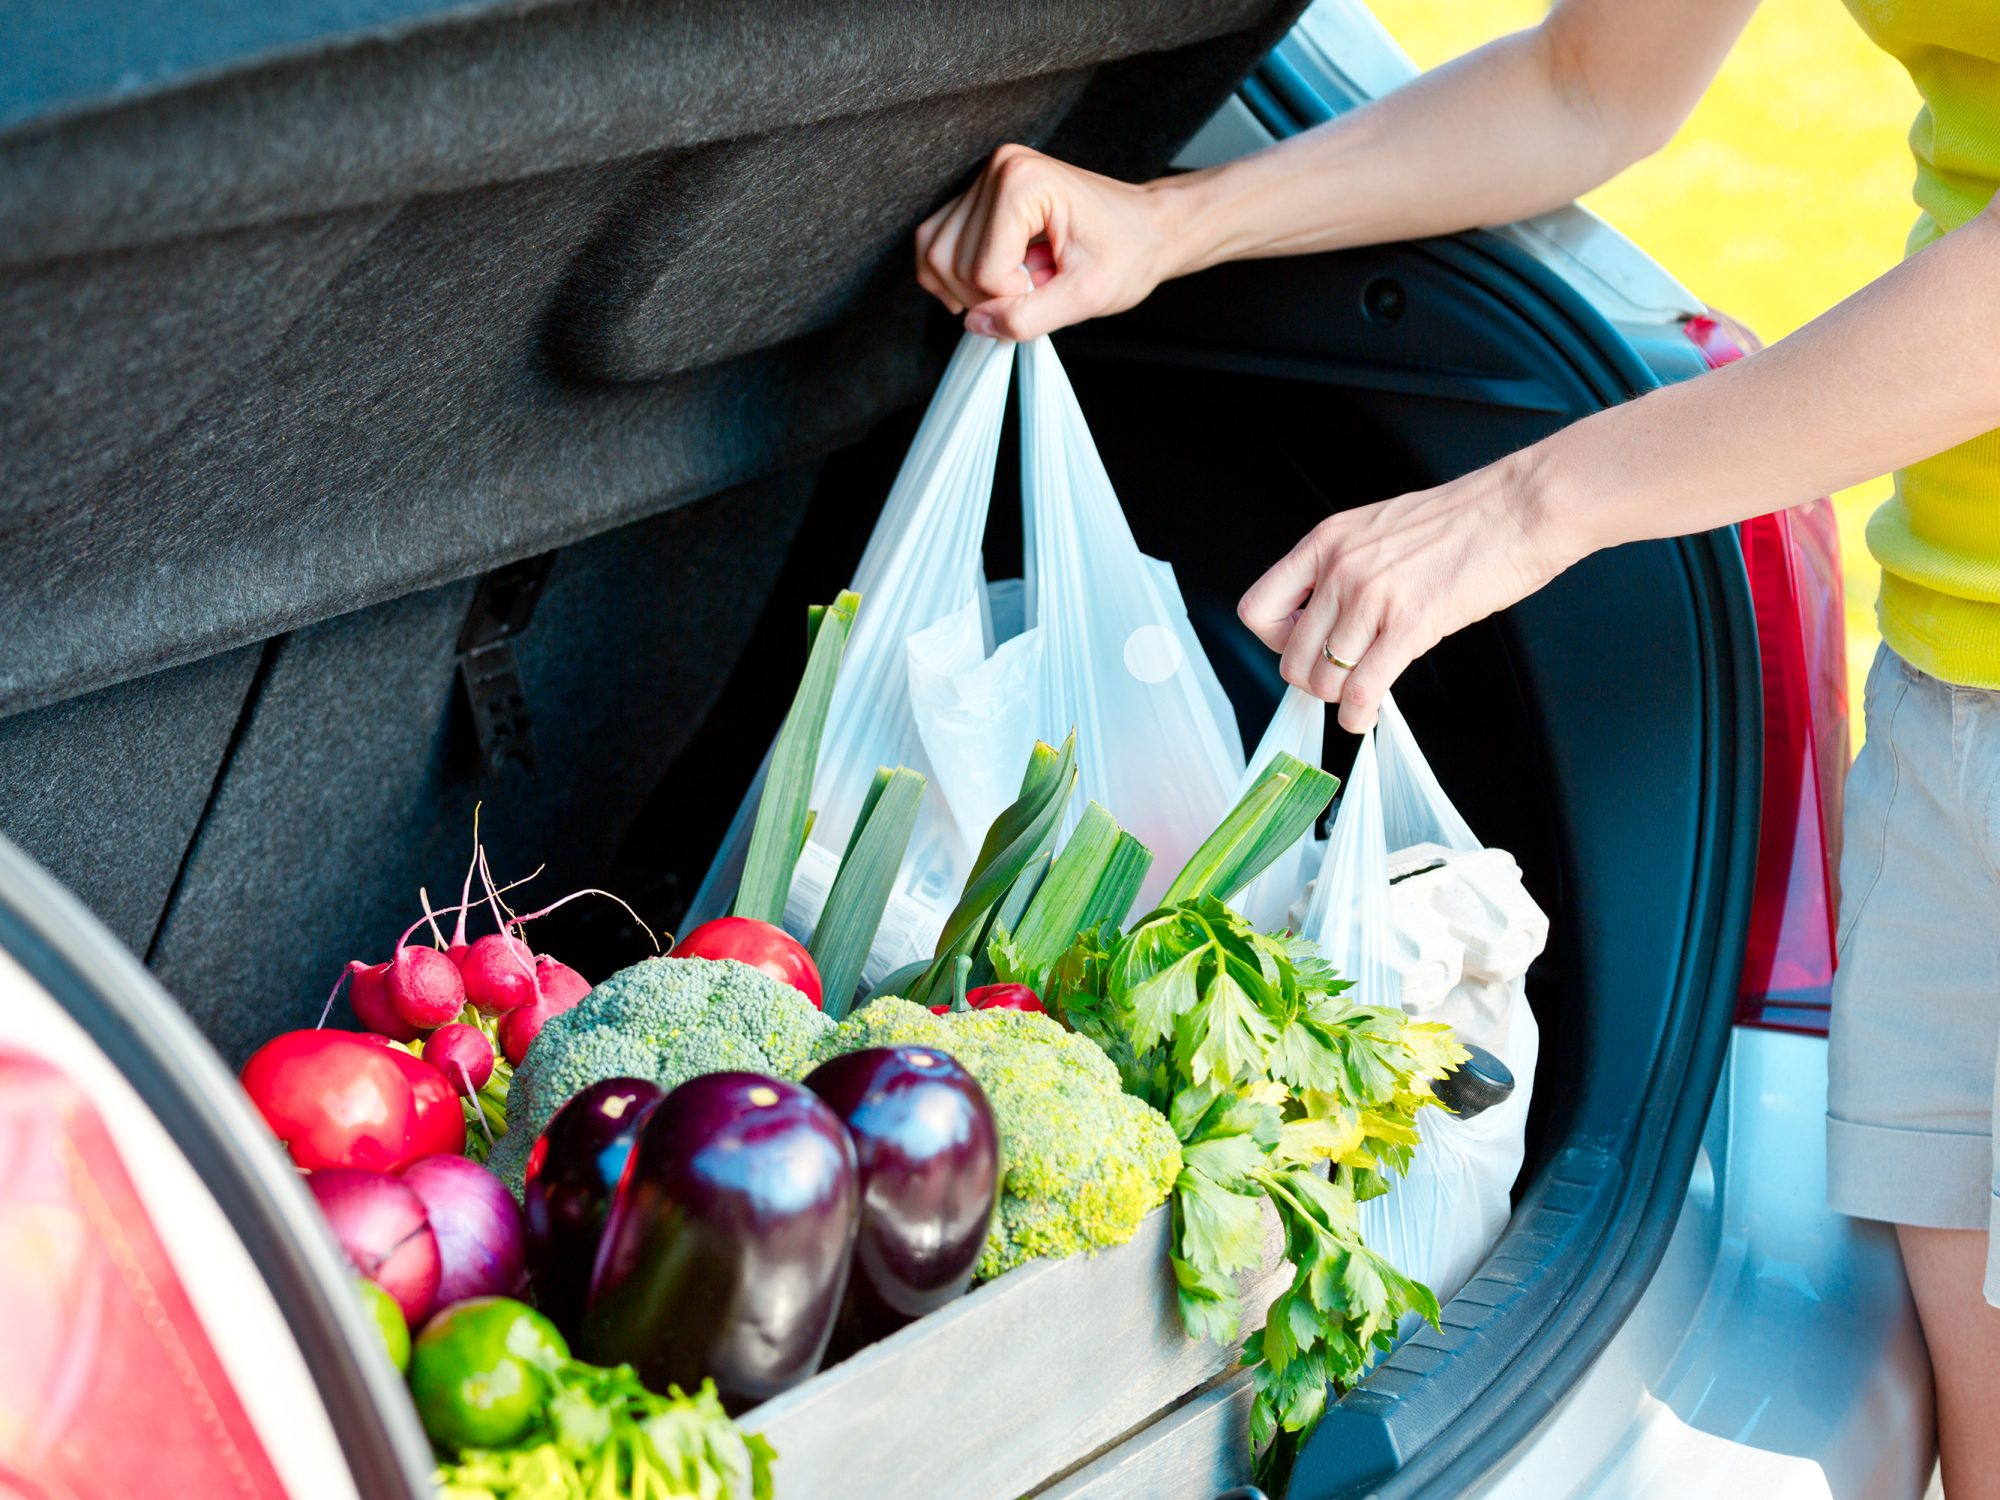 You Can Get Compensated for Spoiled Groceries After a Power Outage—Here's How